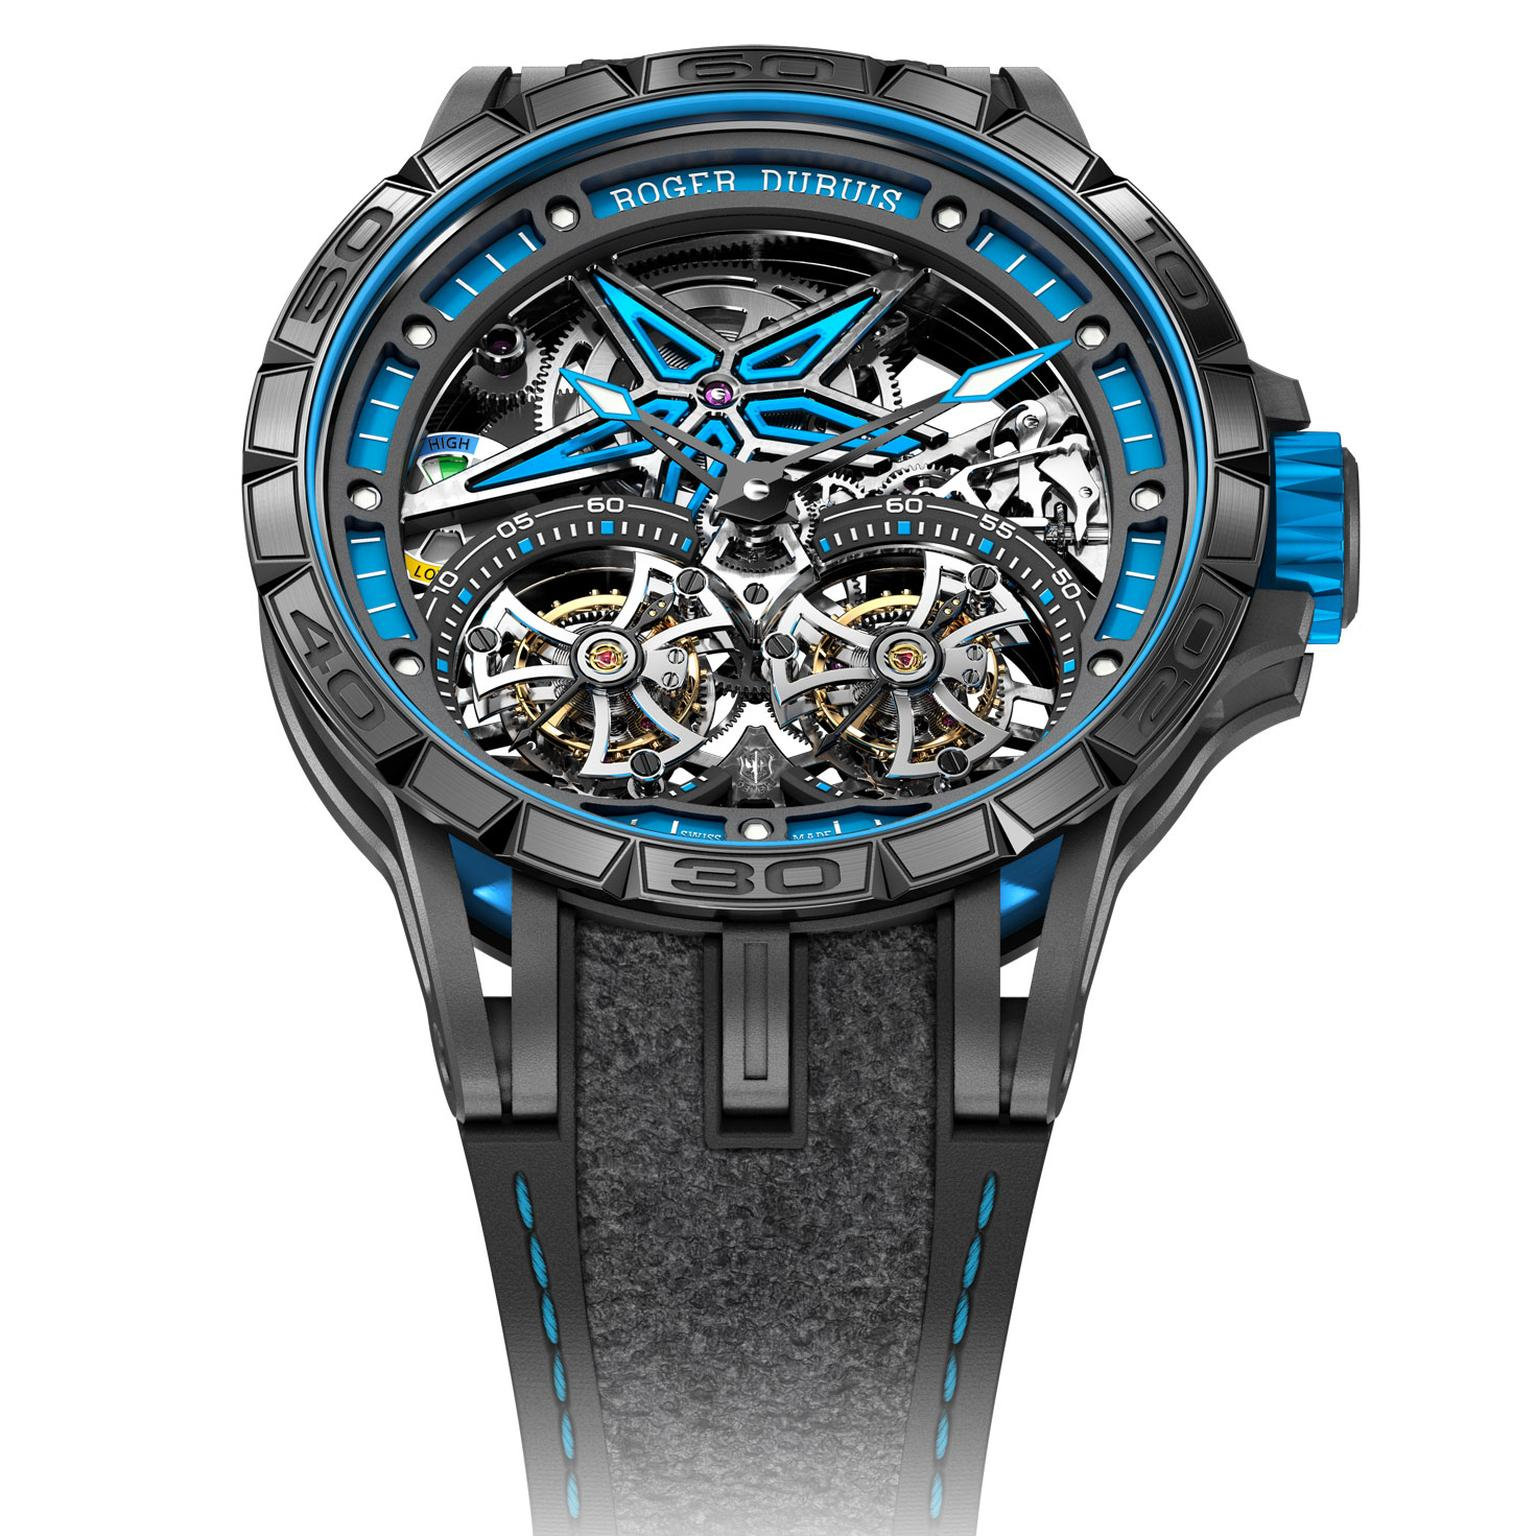 Roger Dubuis Excalibur Spider Pirelli - Double Flying Tourbillon